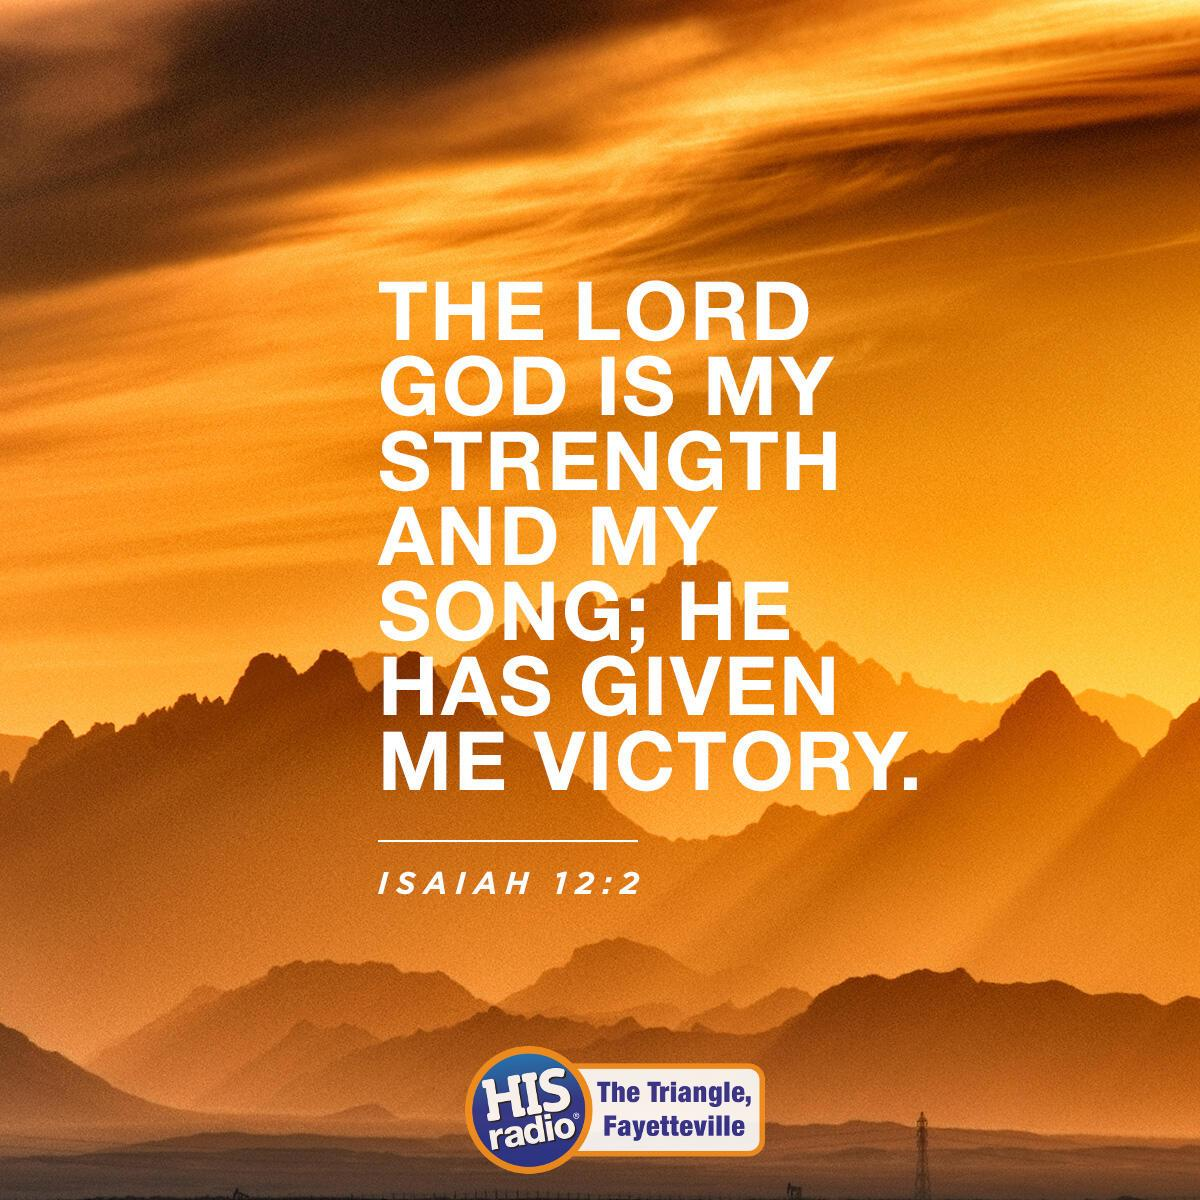 Isaiah 12:2 - Verse of the Day